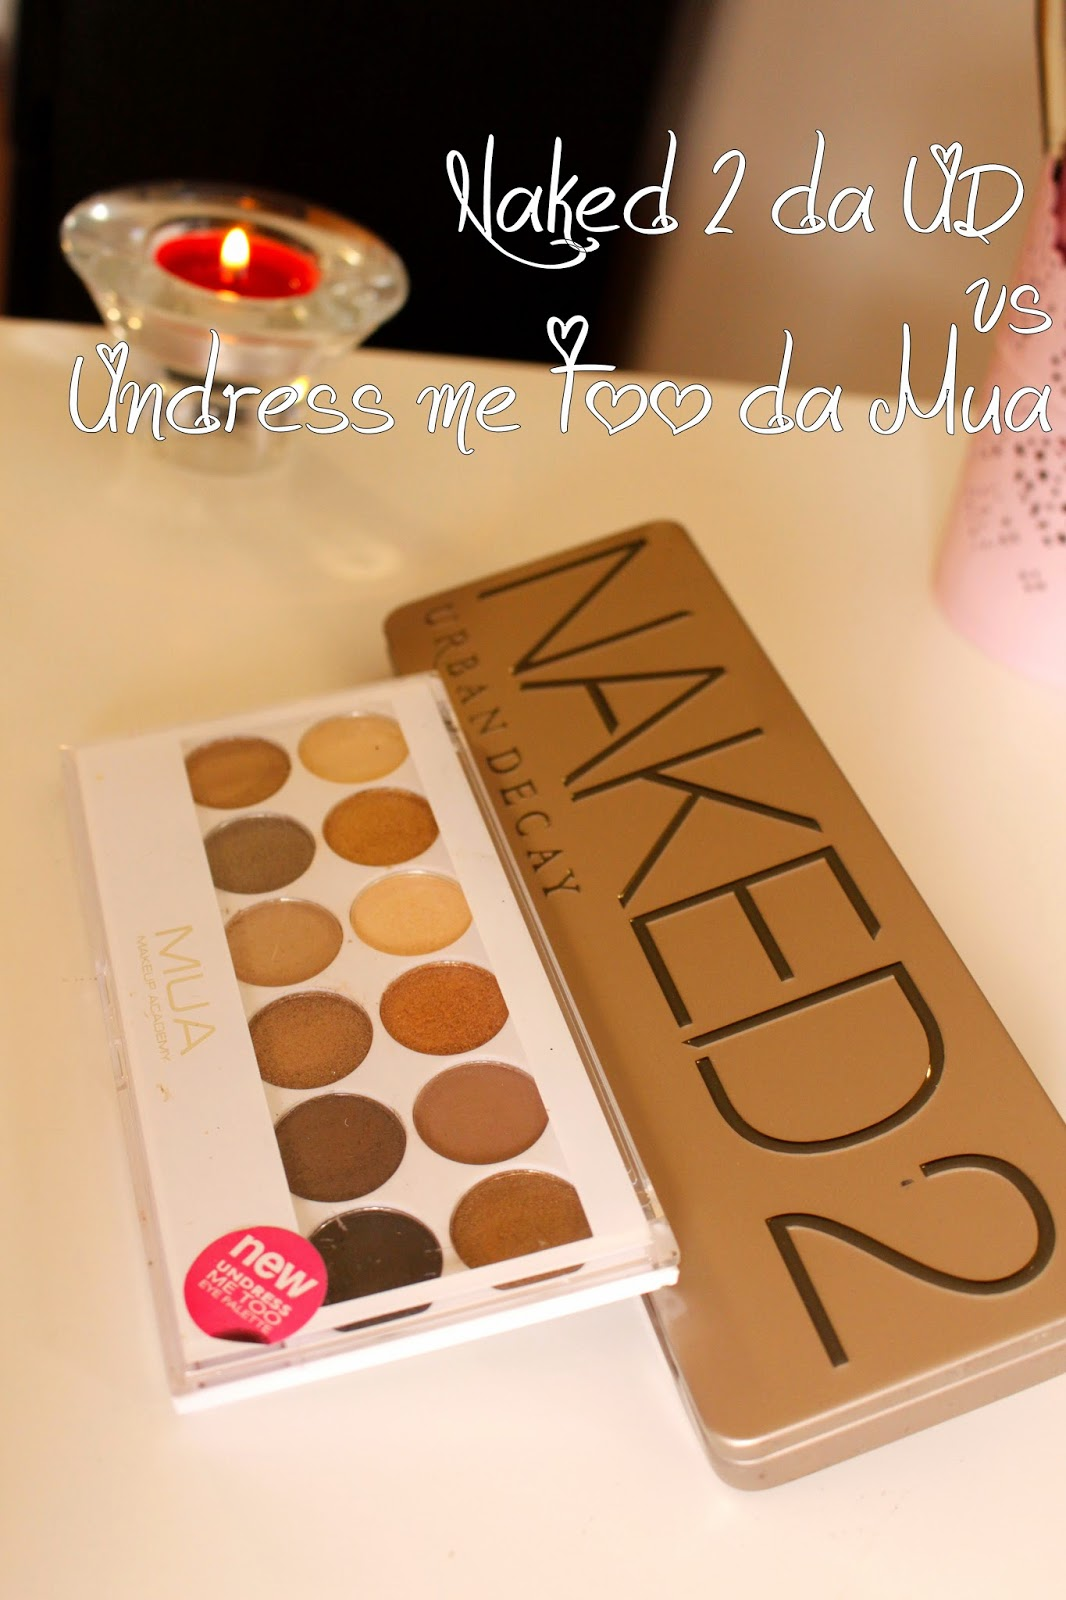 naked 2 da urban decay vs undress me too da mua